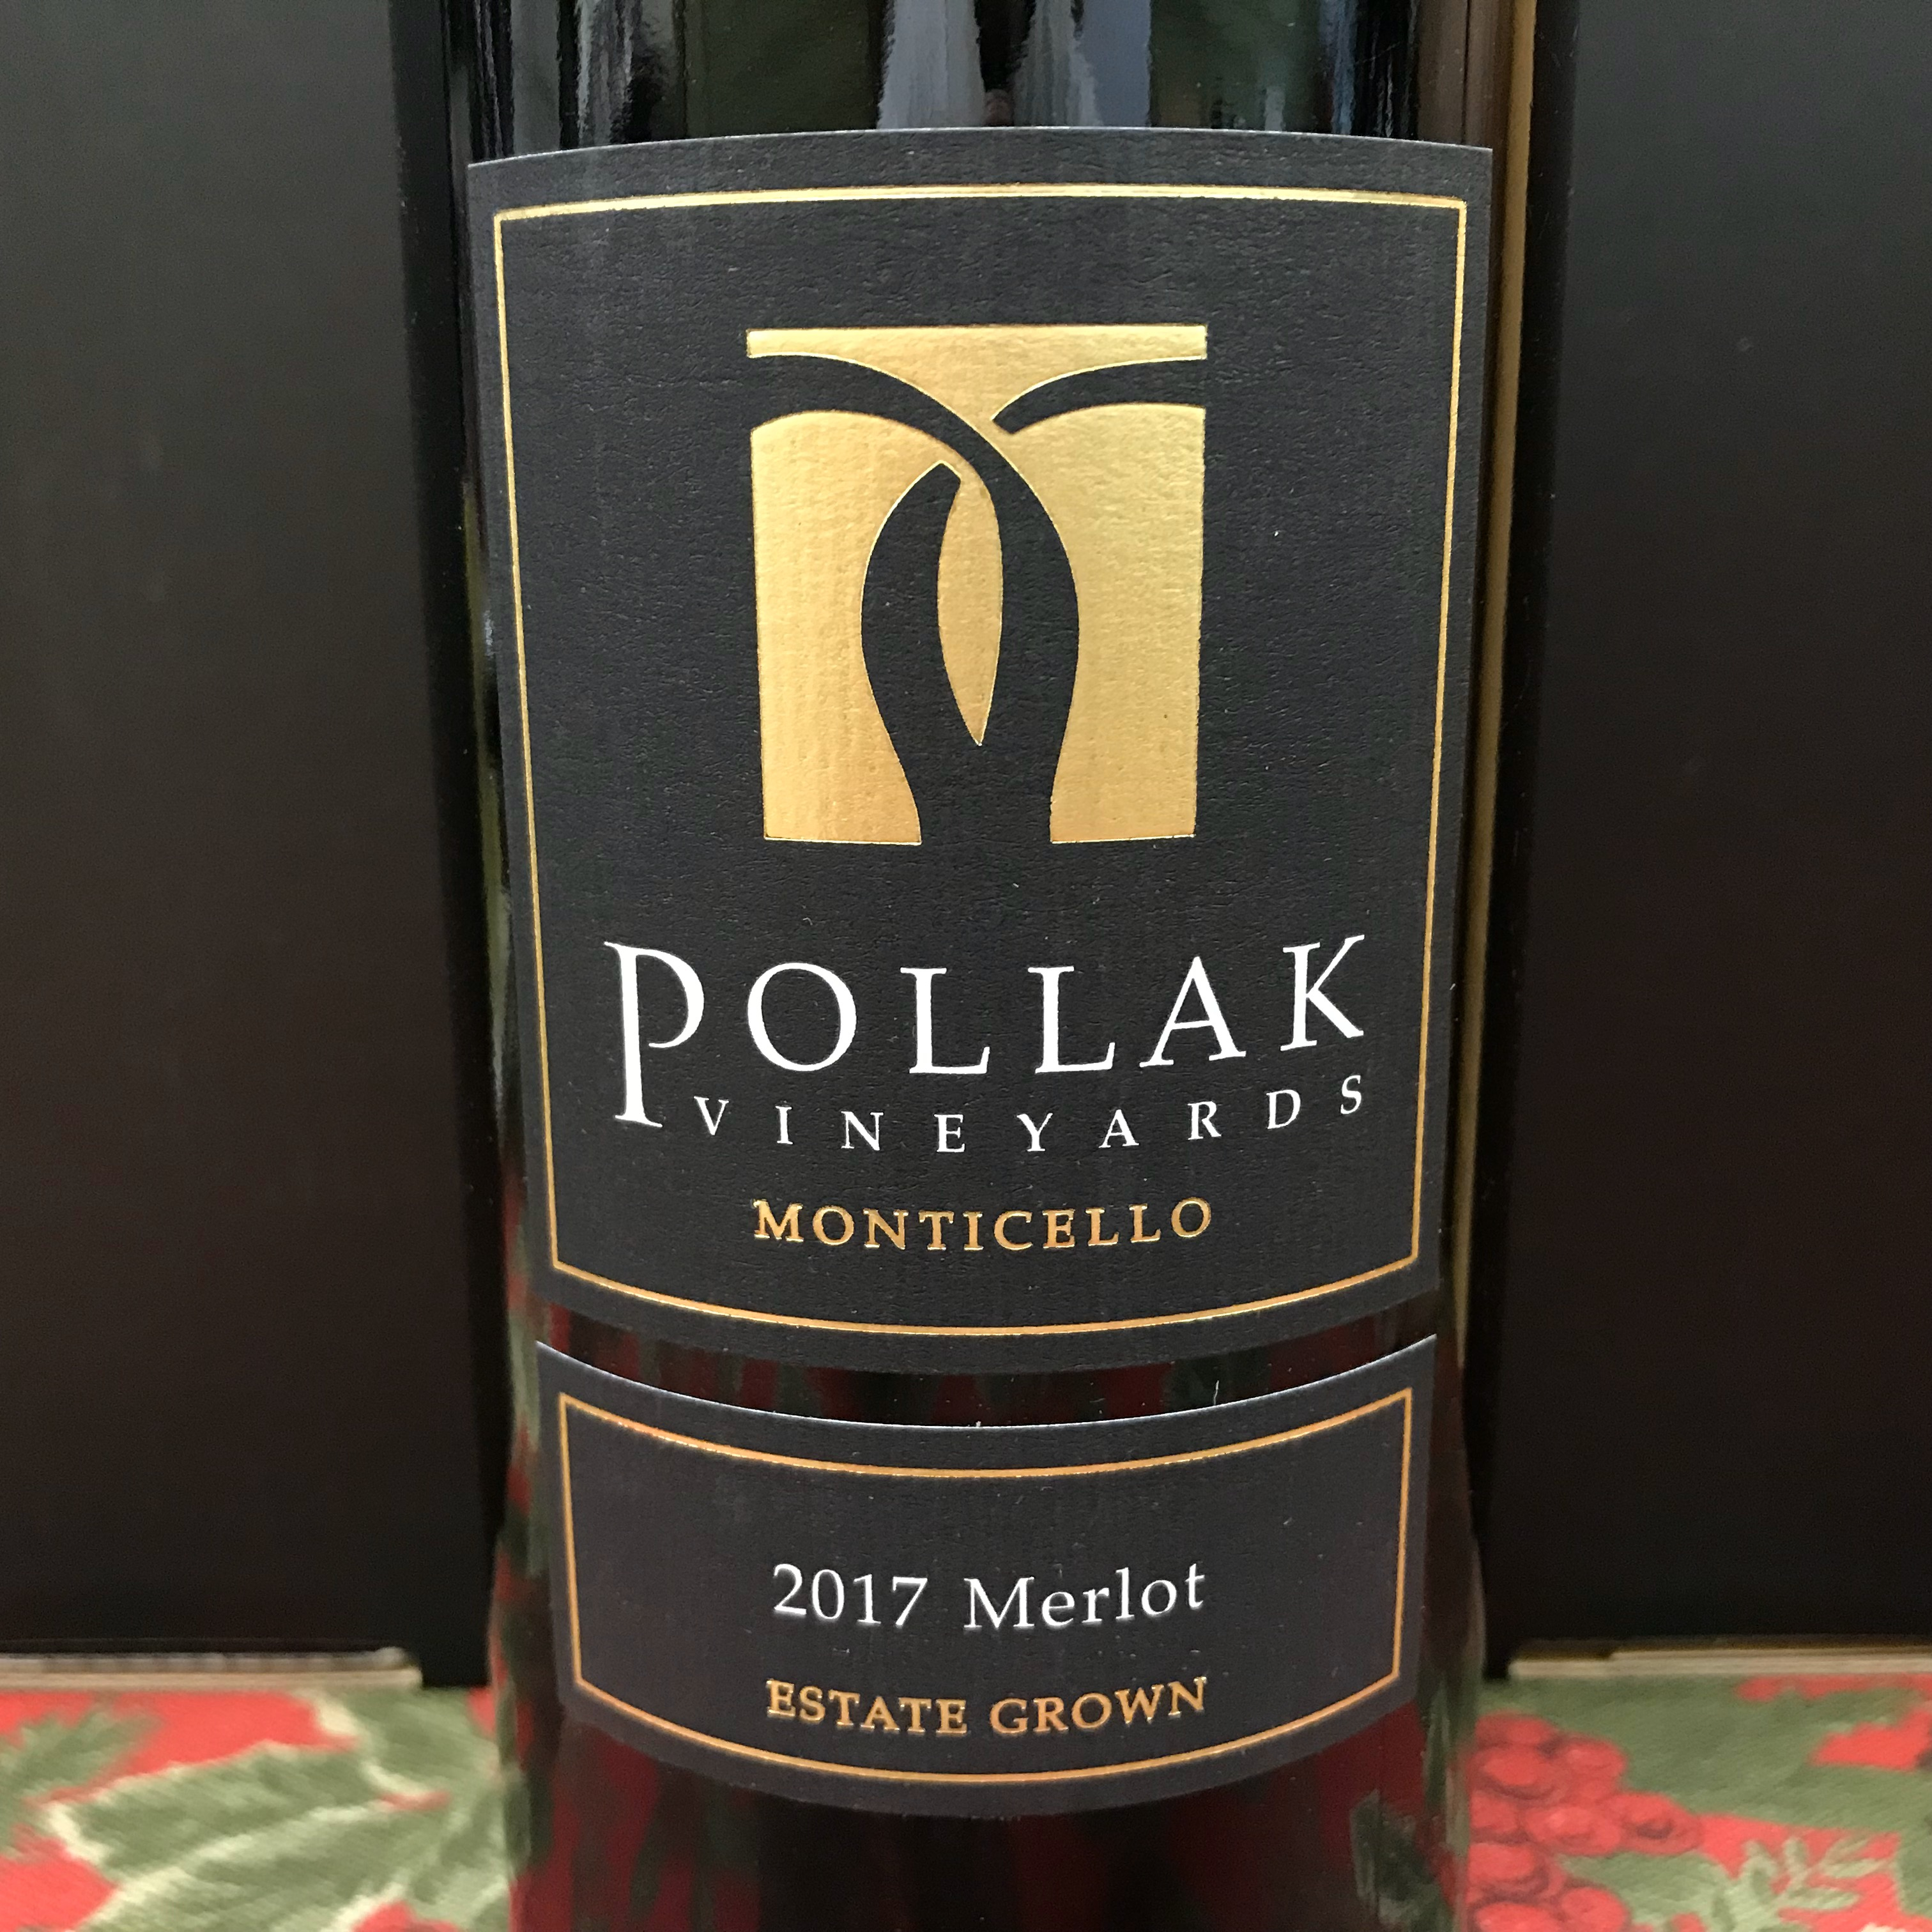 Pollak Vineyards Merlot Monticello Estate 2017